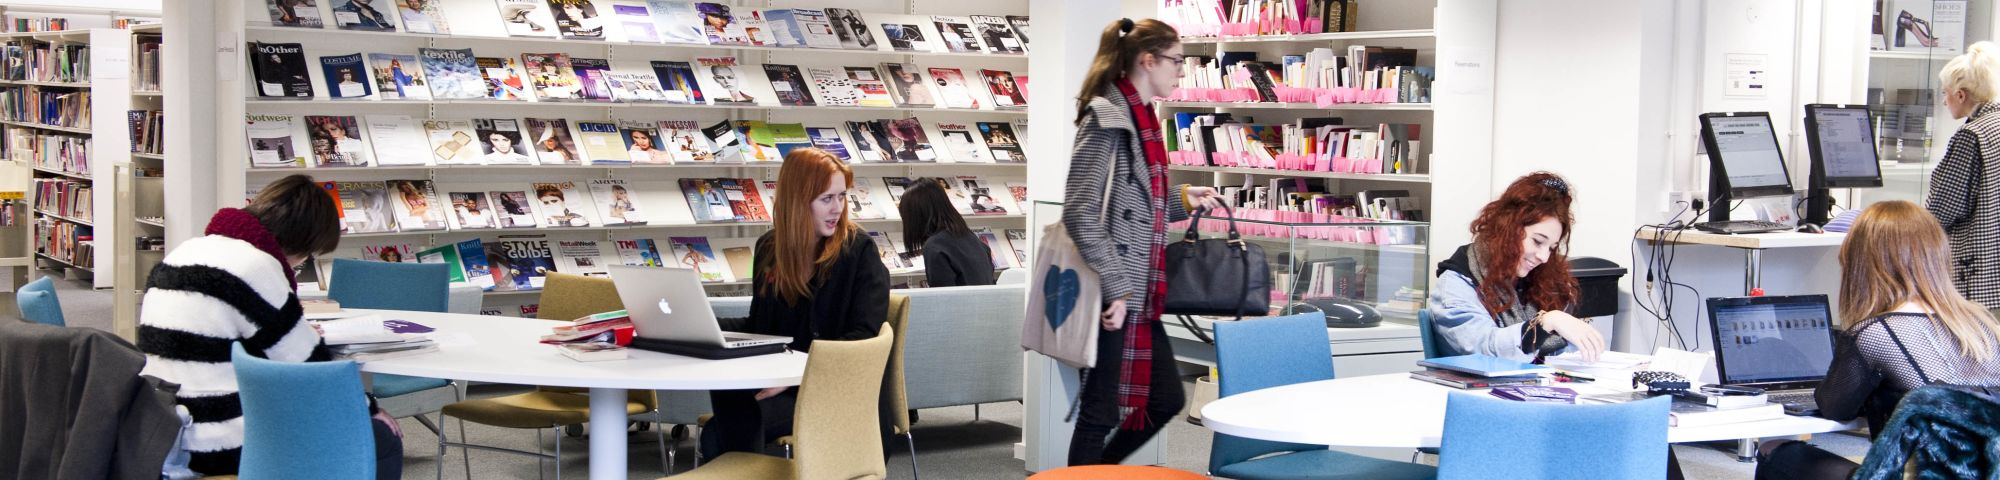 Students in LCF library.